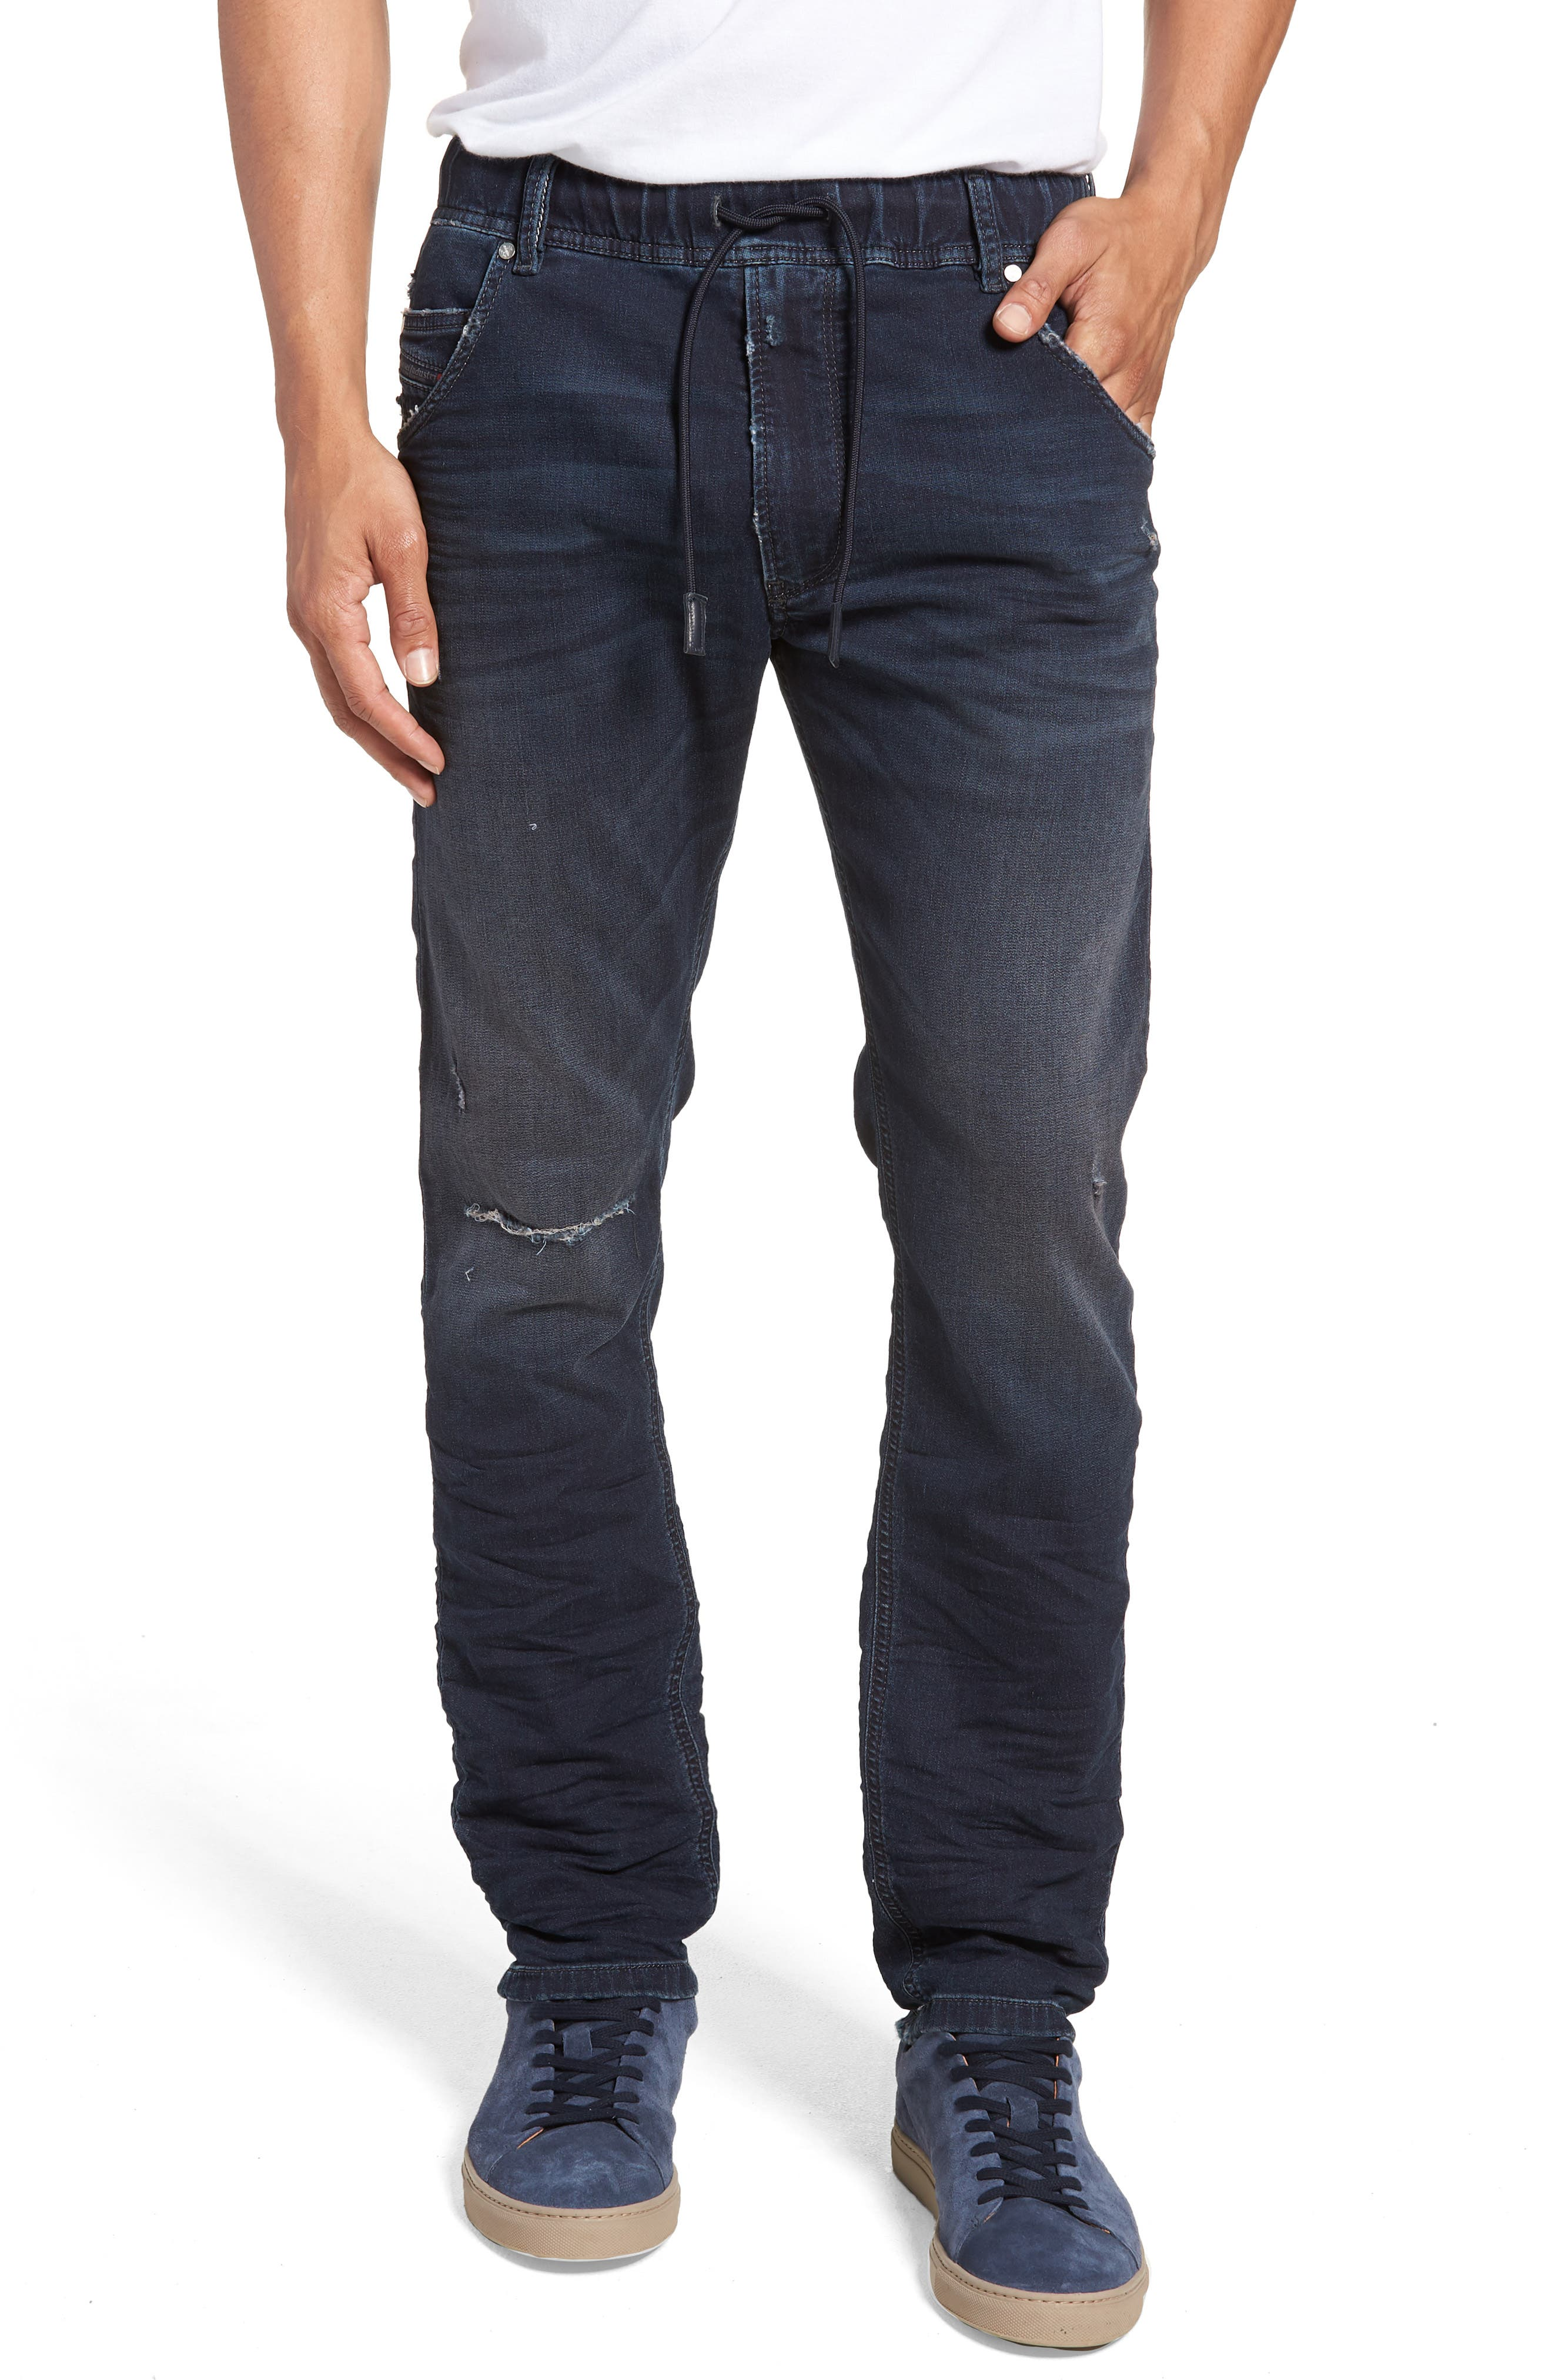 Krooley Skinny Slouchy Fit Jeans,                         Main,                         color, 0699W